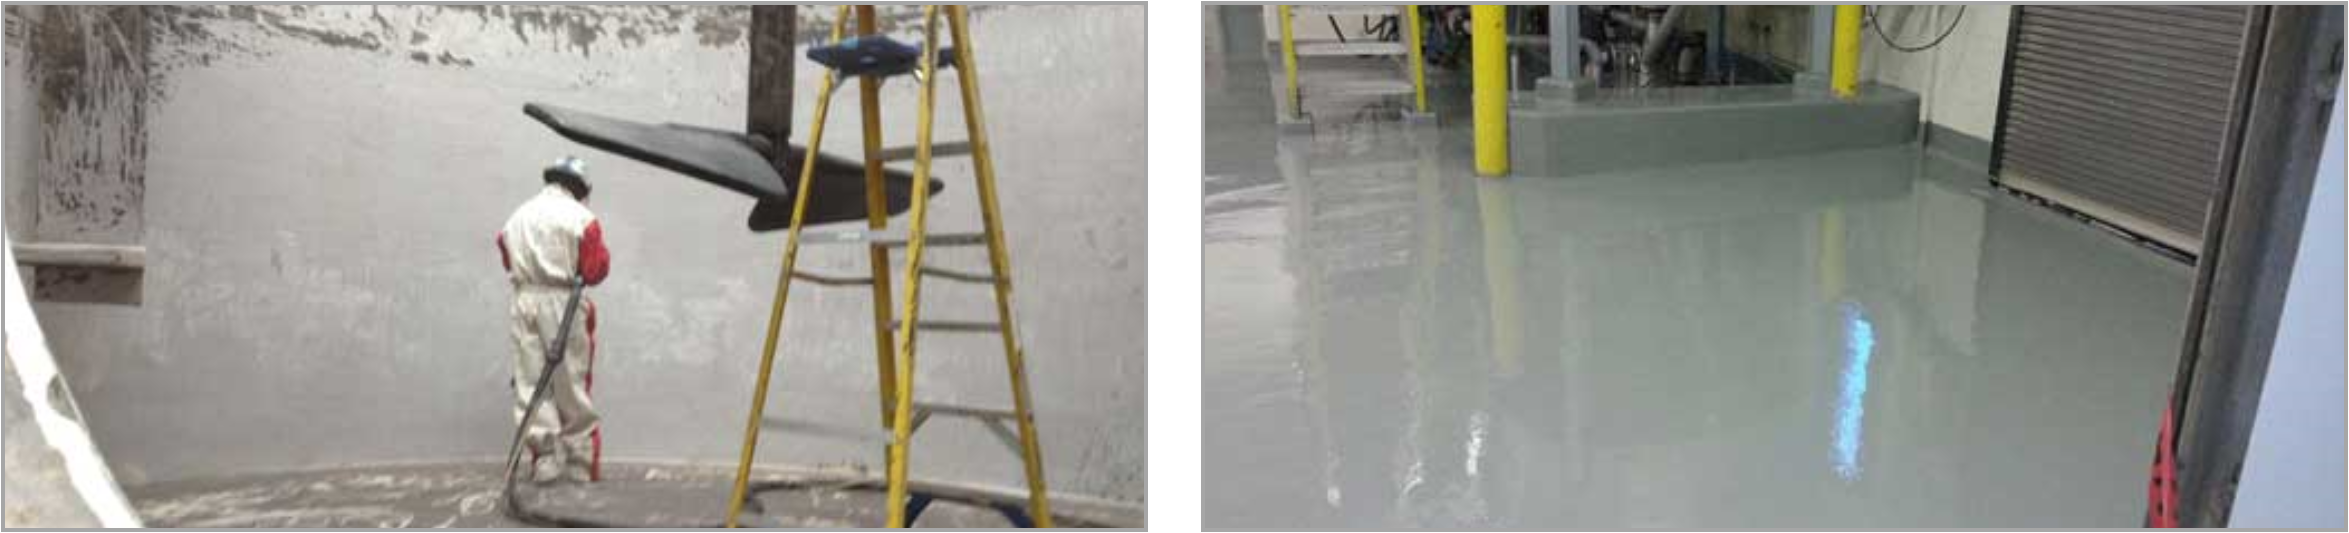 Warren's SIMCO Acquires Carolina Coatings - Private Equity